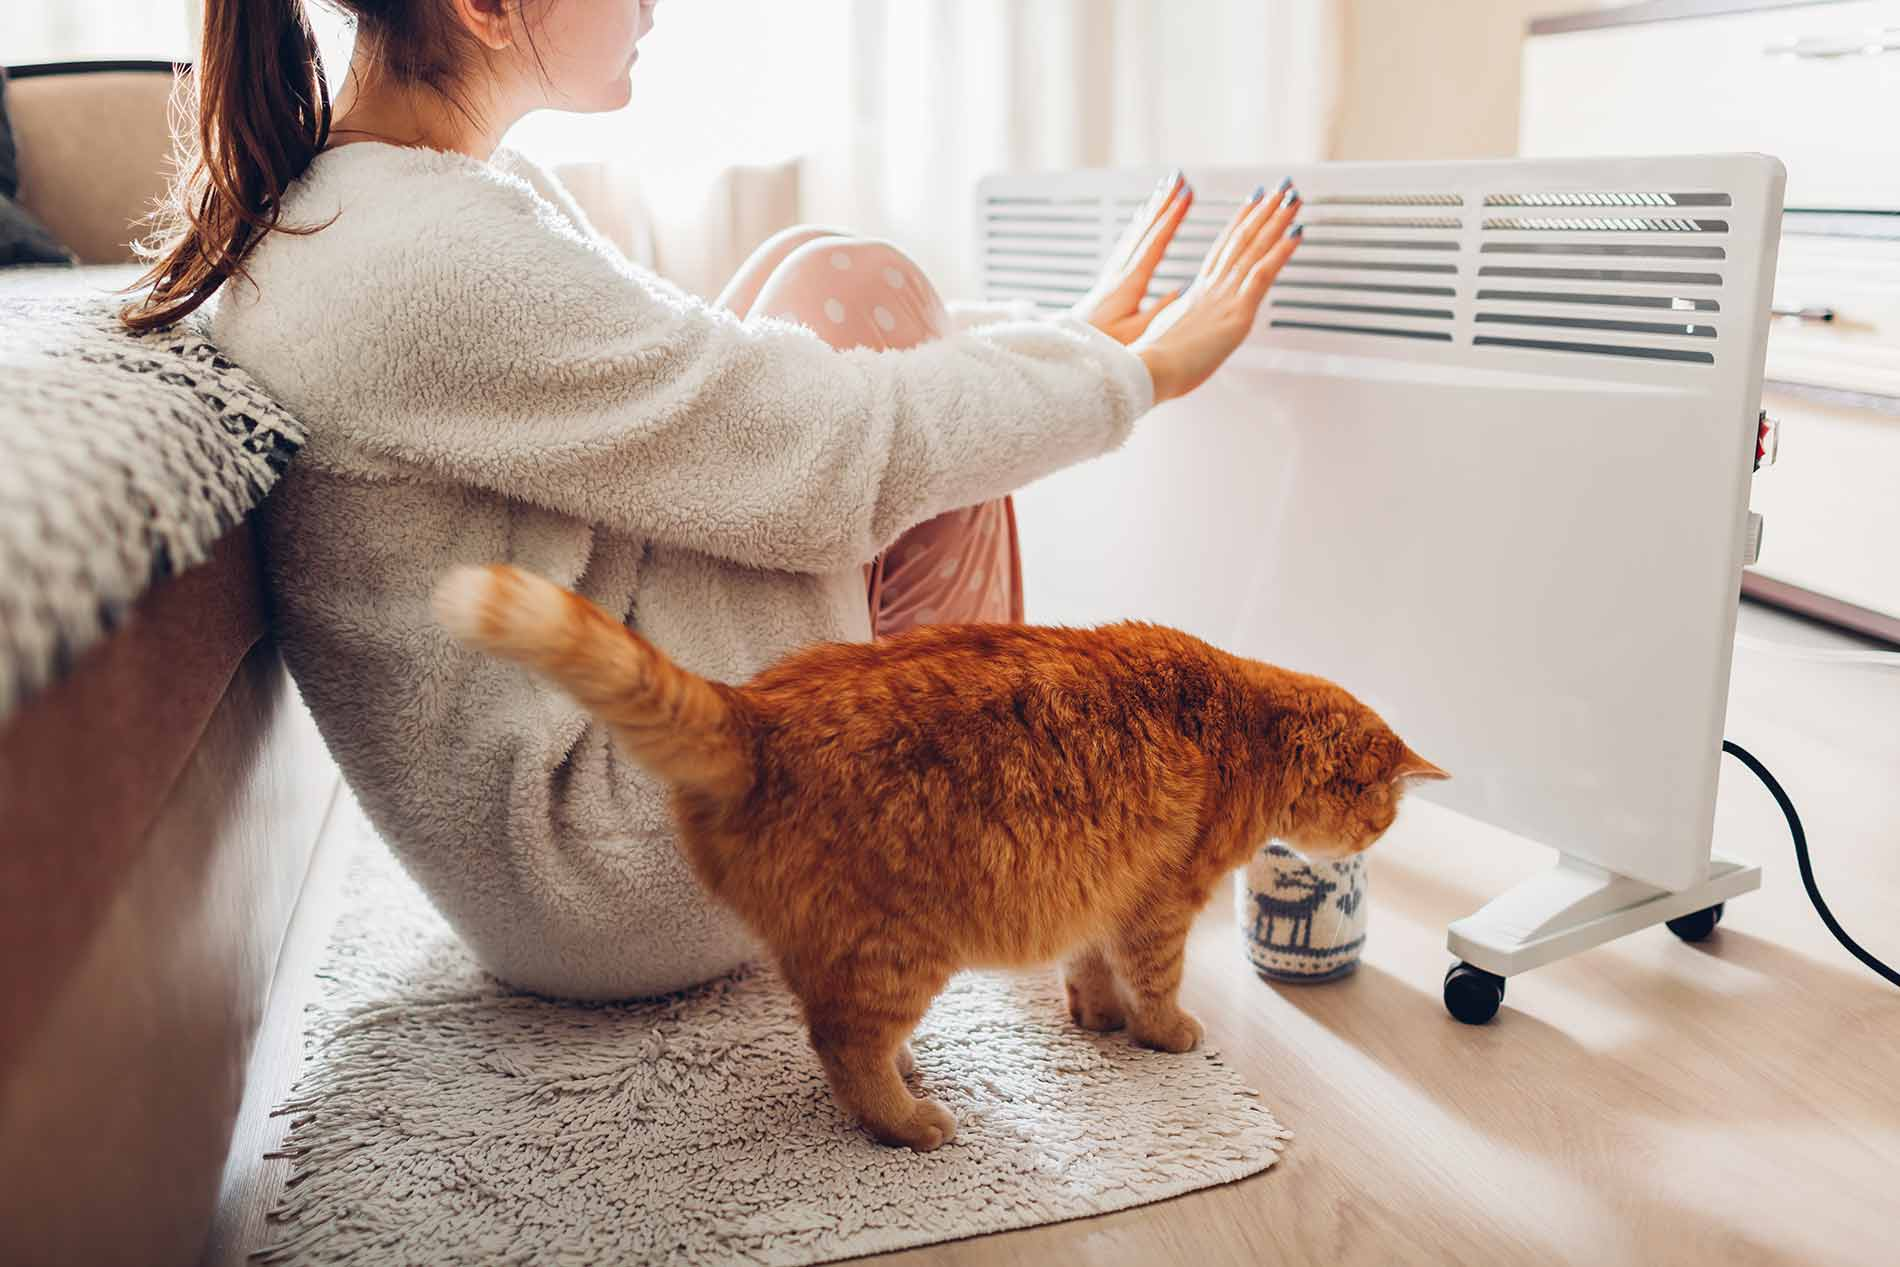 Using heater home winter woman warming her hands with cat heating season